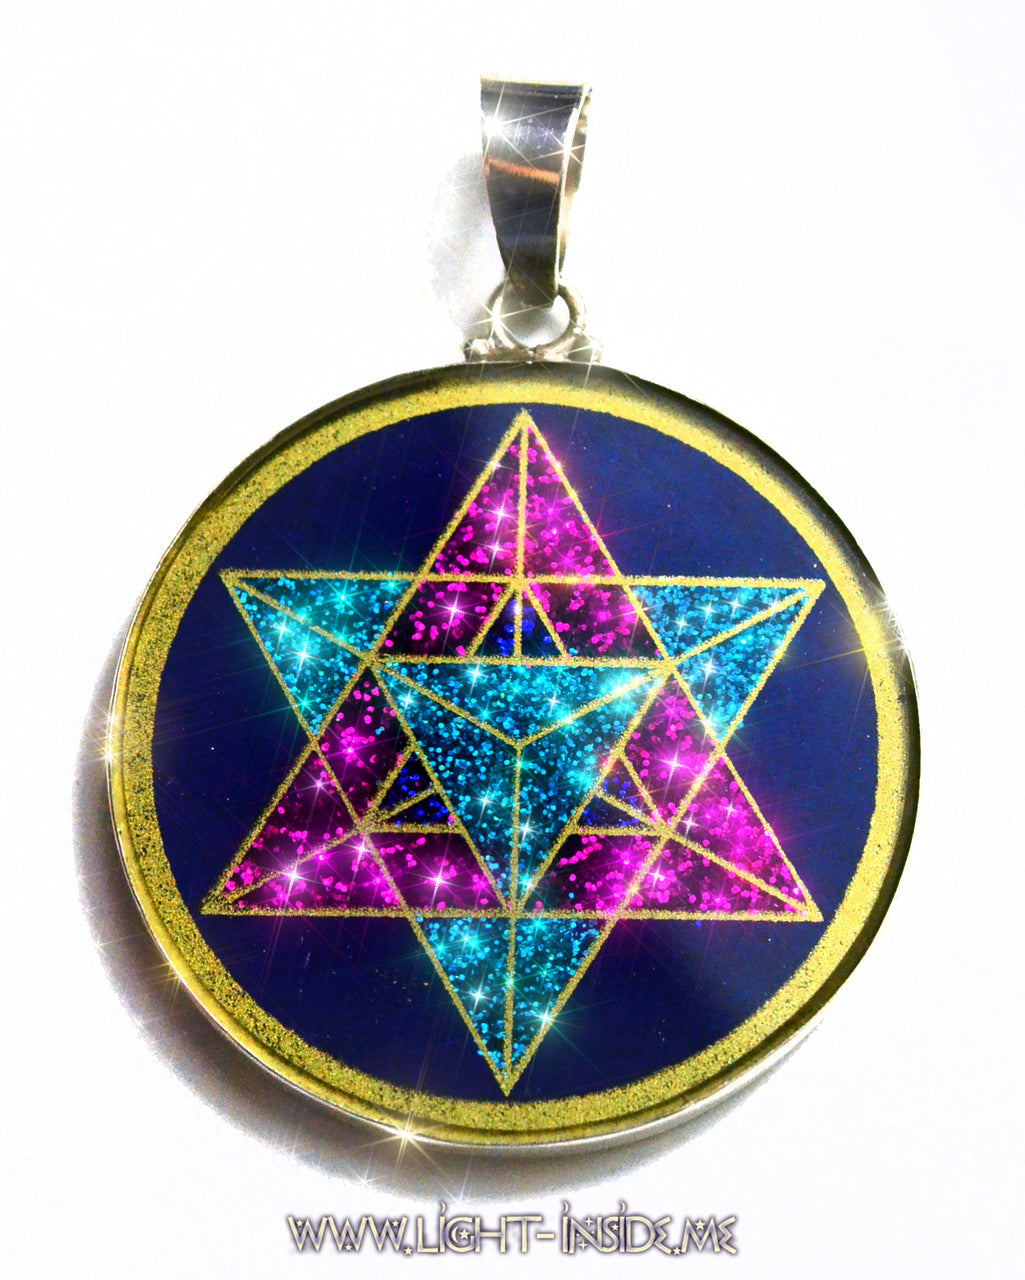 Merkaba sacred geometry pendant on lapis lazuli light inside me merkaba sacred geometry pendant on lapis lazuli aloadofball Gallery